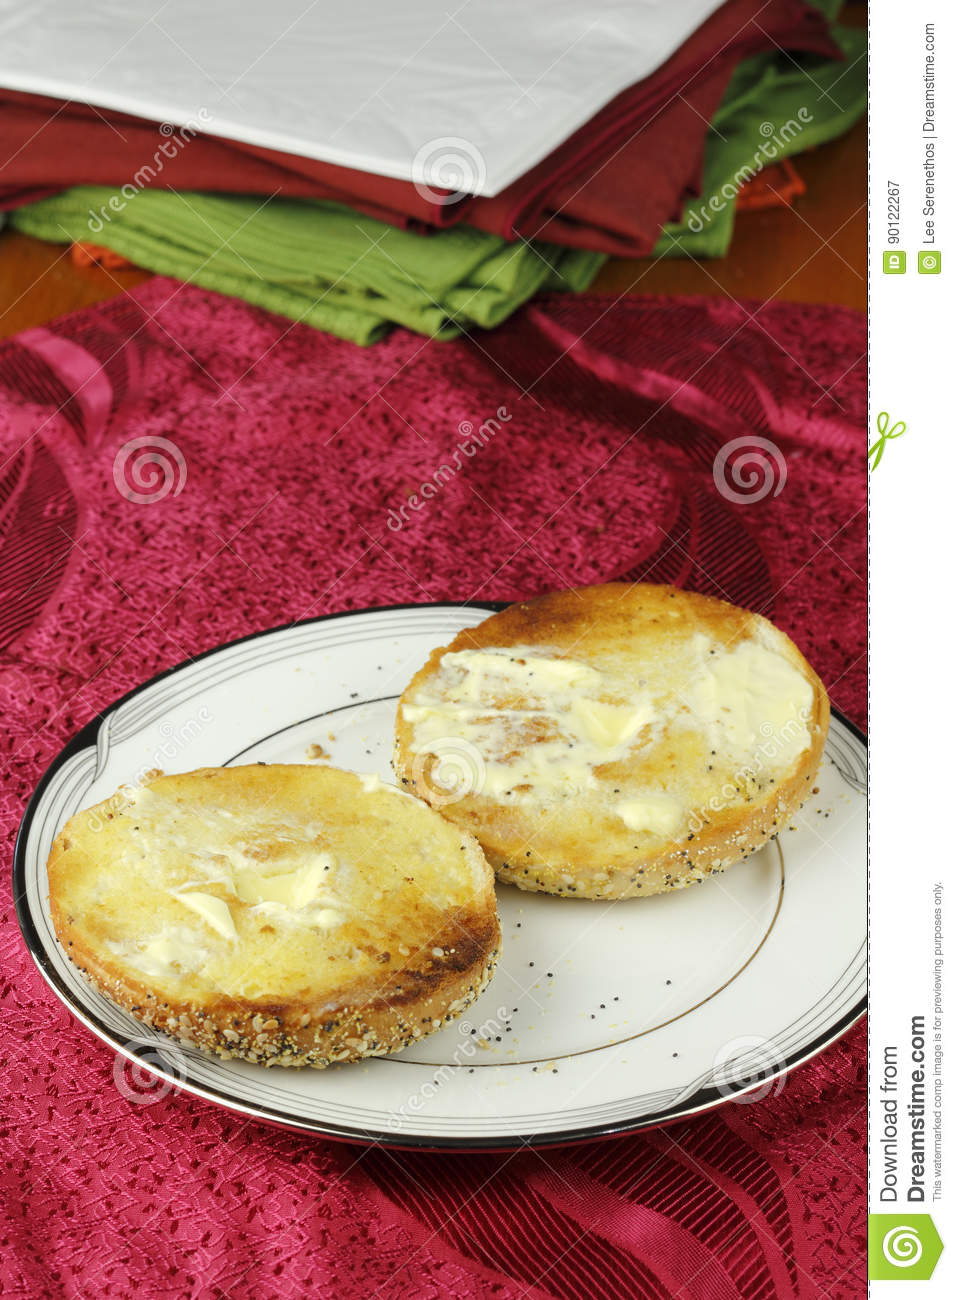 Buttered Everything Bagel on a Plate over a Placemat